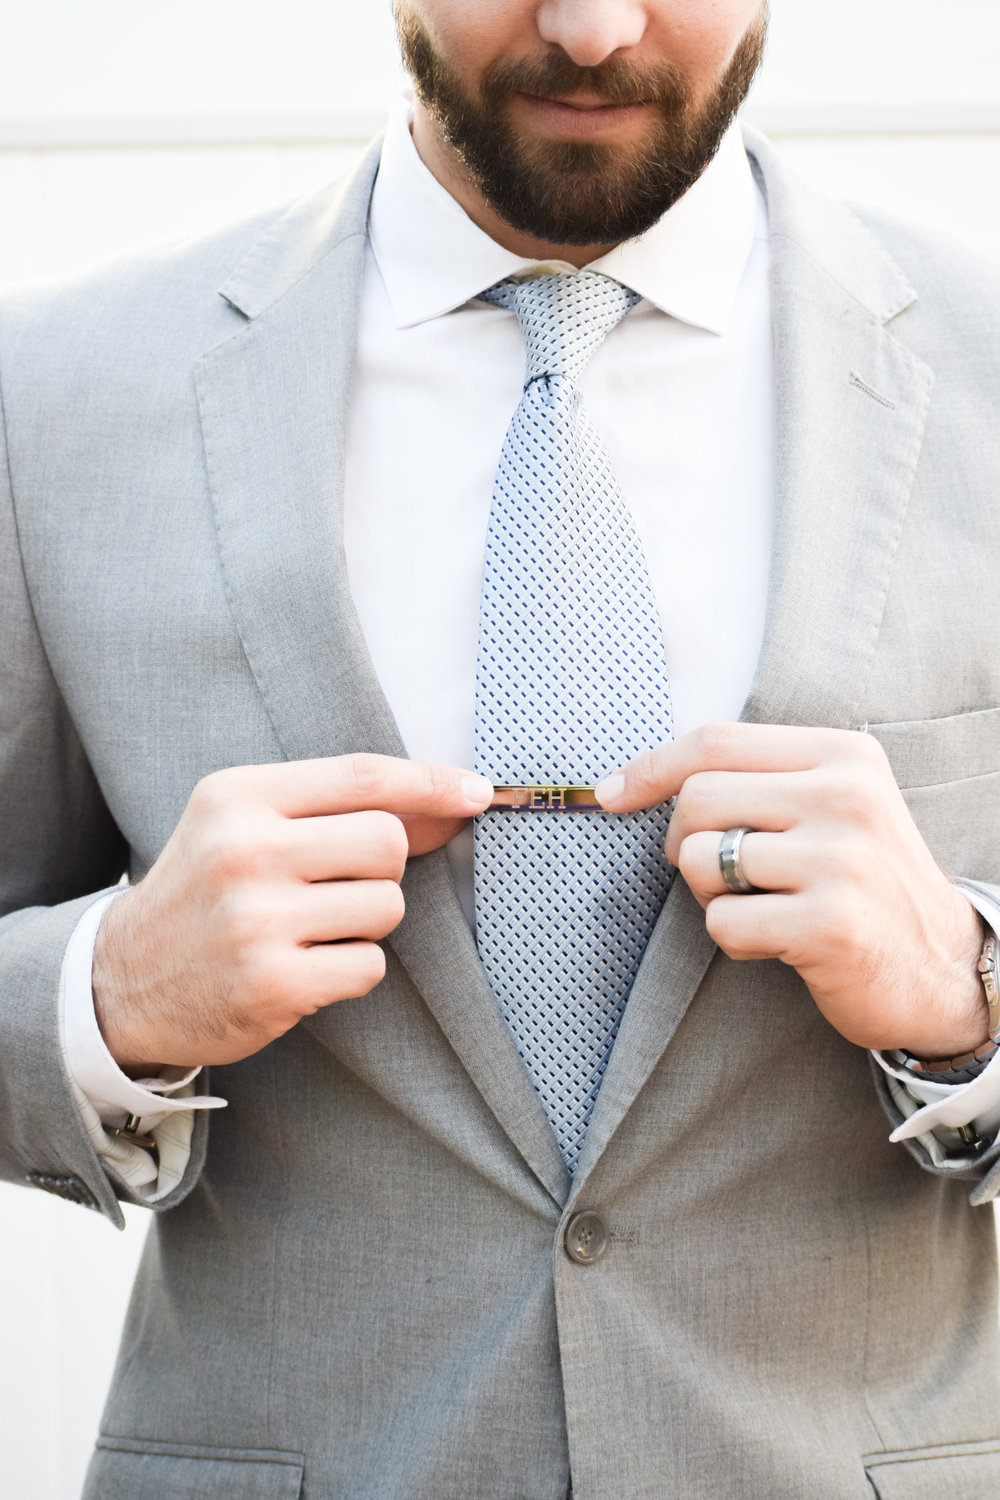 Groomsman Proposal Gift Ideas -- Engraved Groomsman Tie Clips - Things Remembered